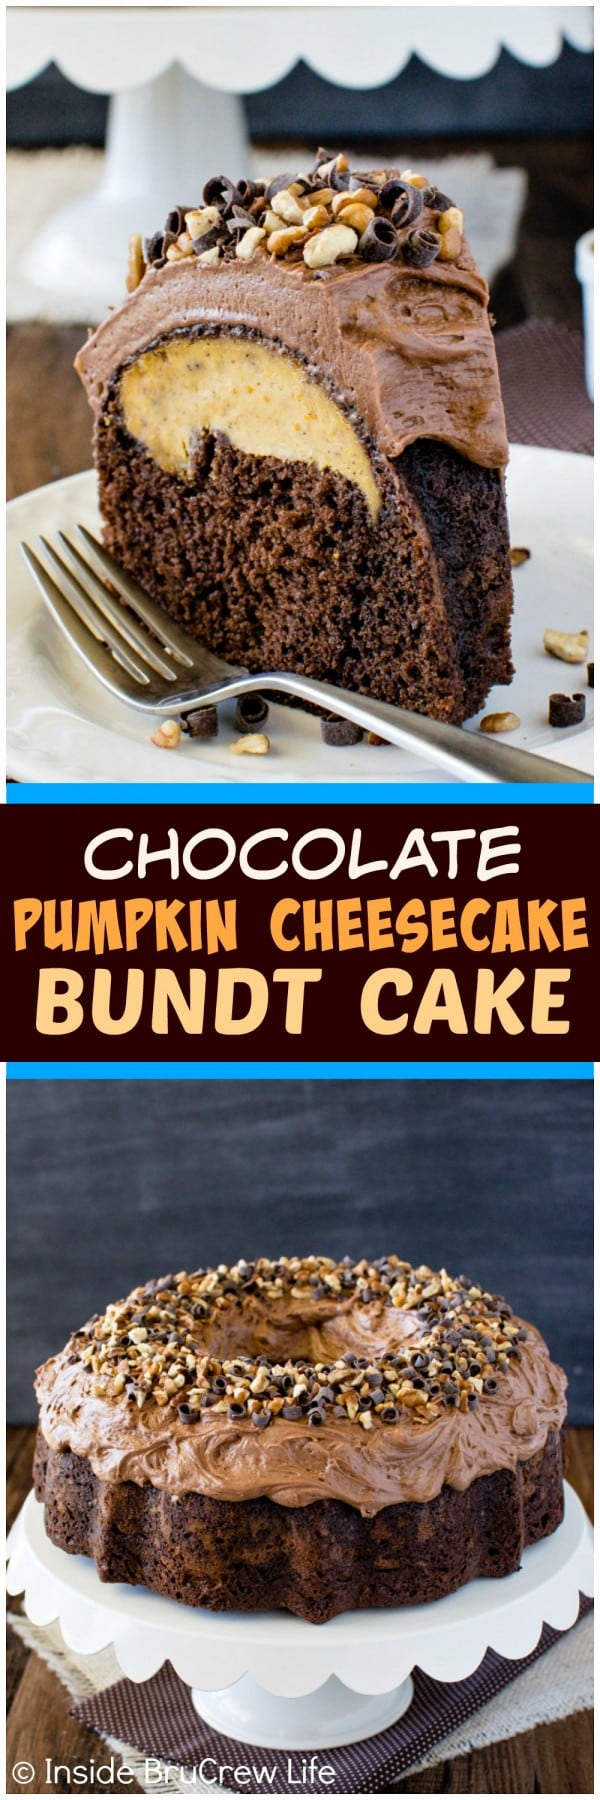 Chocolate Pumpkin Cheesecake Bundt Cake - creamy frosting, nuts, and cheesecake make this a fun fall treat. Great dessert recipe!